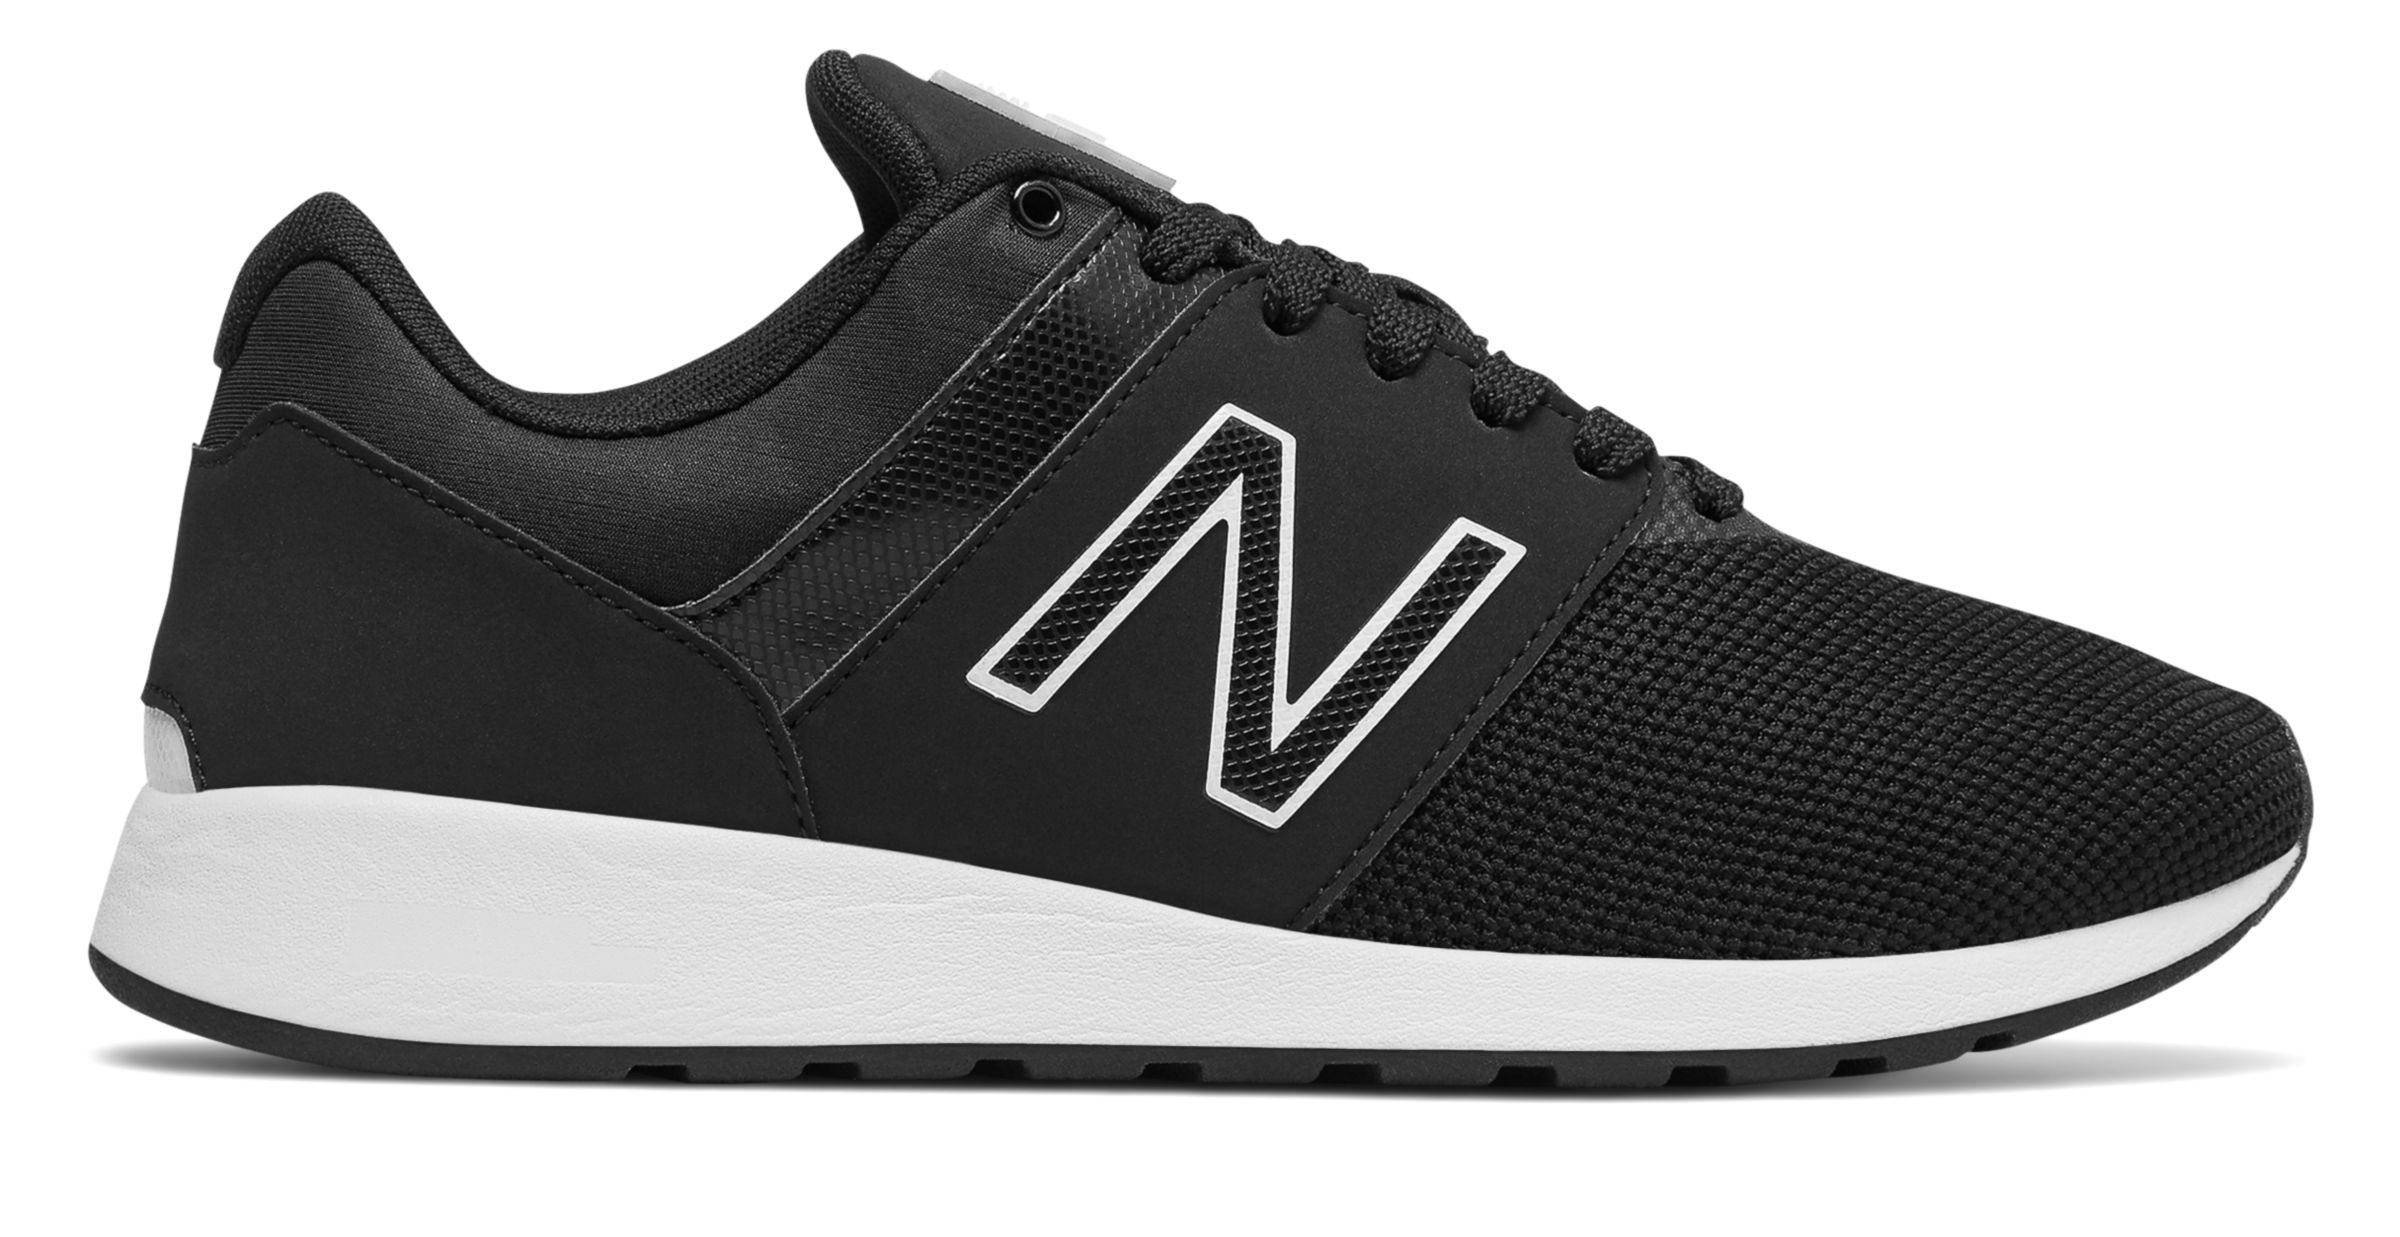 3b6385a3905 New Balance Female Women s 24 Revlite Midsole Shoes Adult Black With ...